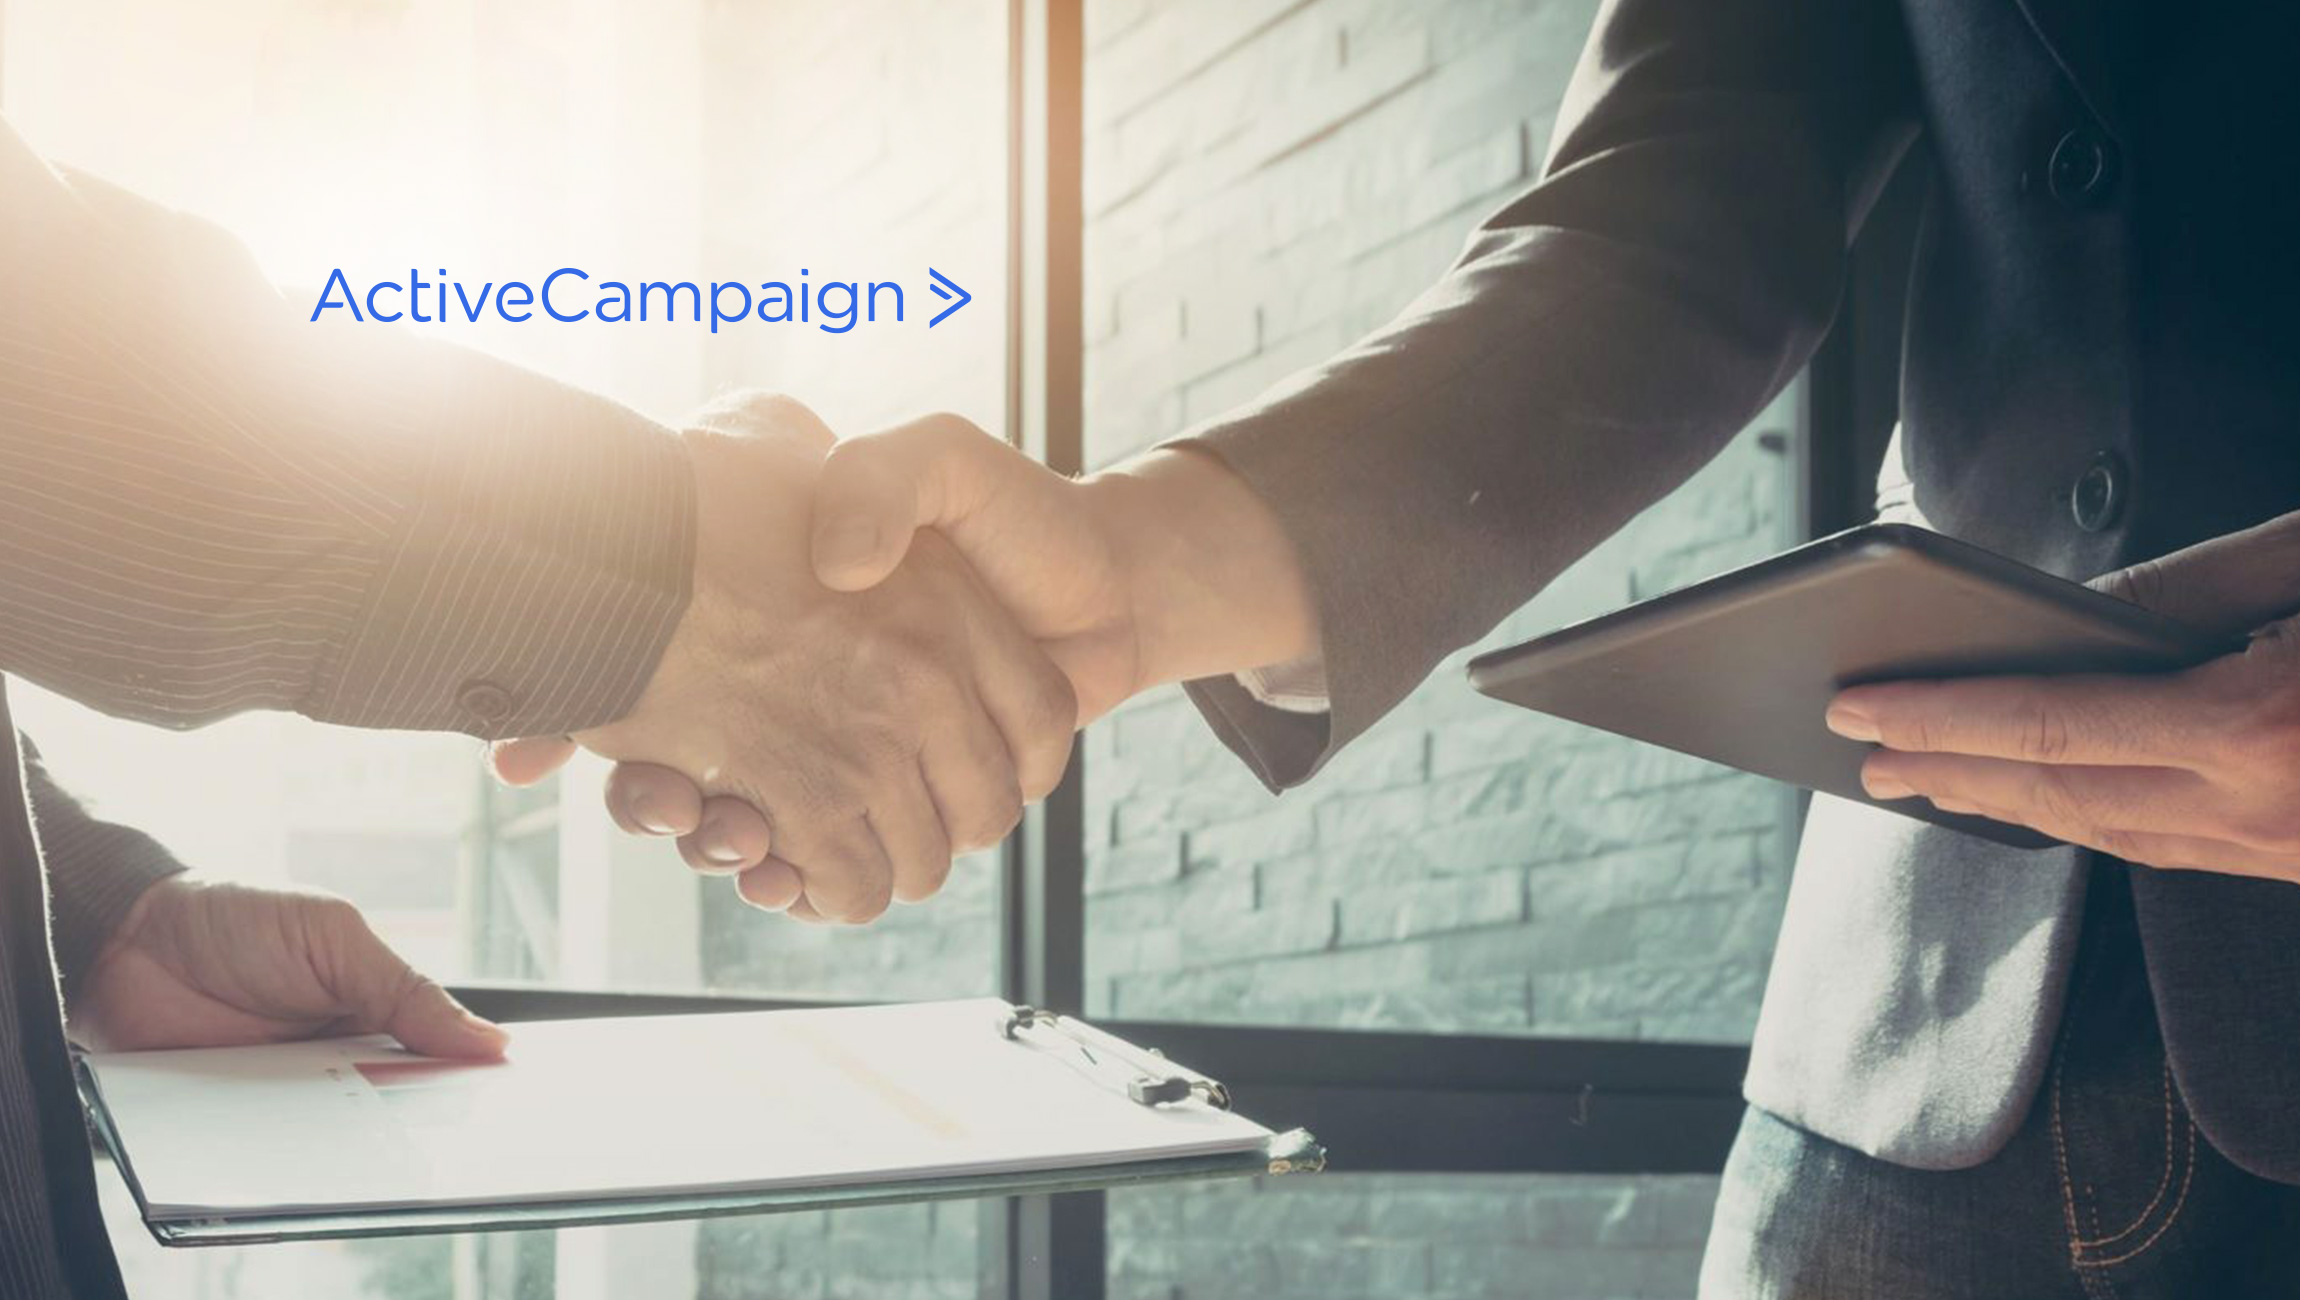 ActiveCampaign Hires Cory Snyder to Expand Its Rapidly Growing Partner Program